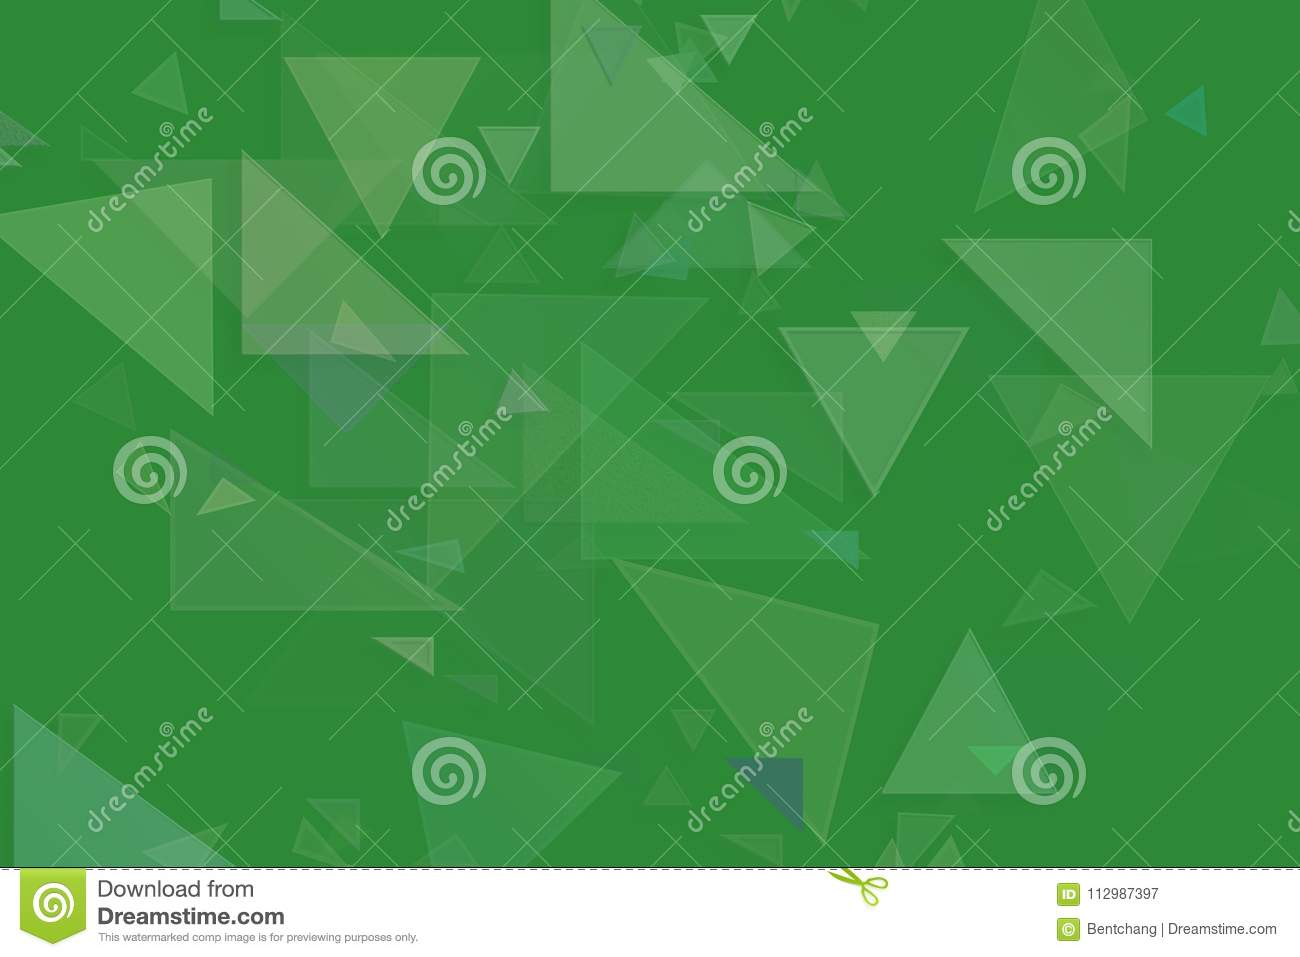 Shape pattern, wallpaper or texture background. Modern, graphic, repeat & creative.